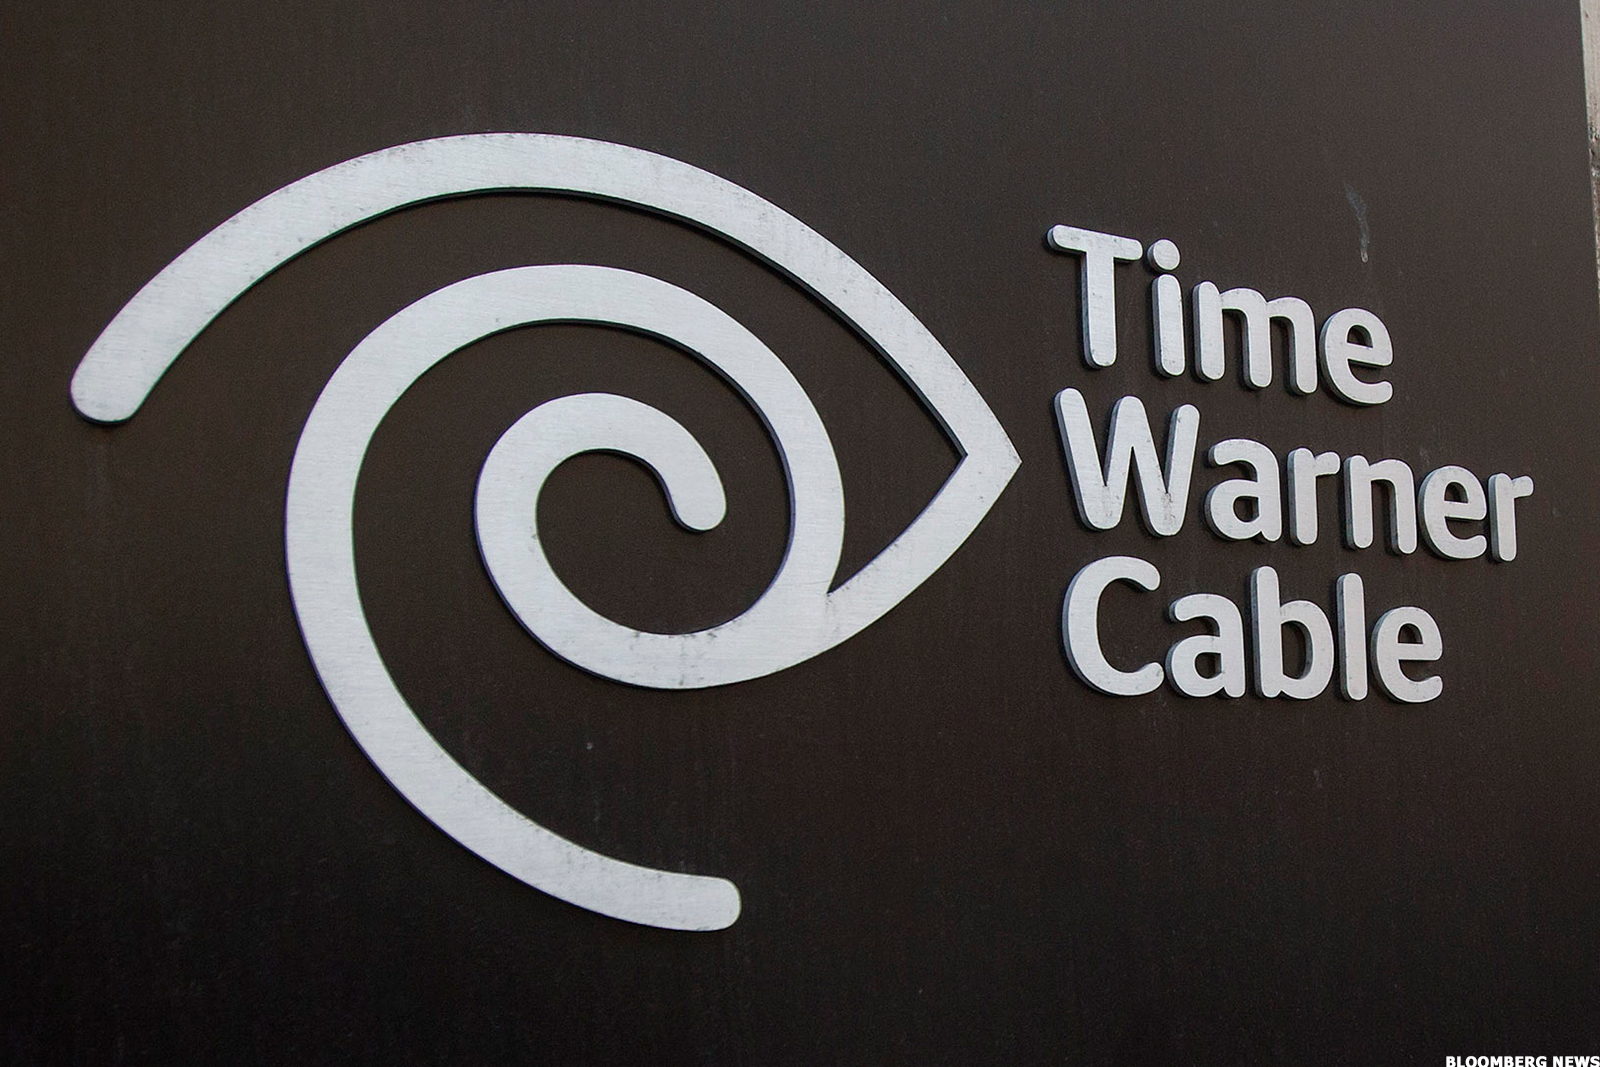 timewarnercable2?resize=665%2C443&ssl=1 time warner cable wiring diagrams cable tv hook up diagrams, time time warner wiring diagram at mifinder.co